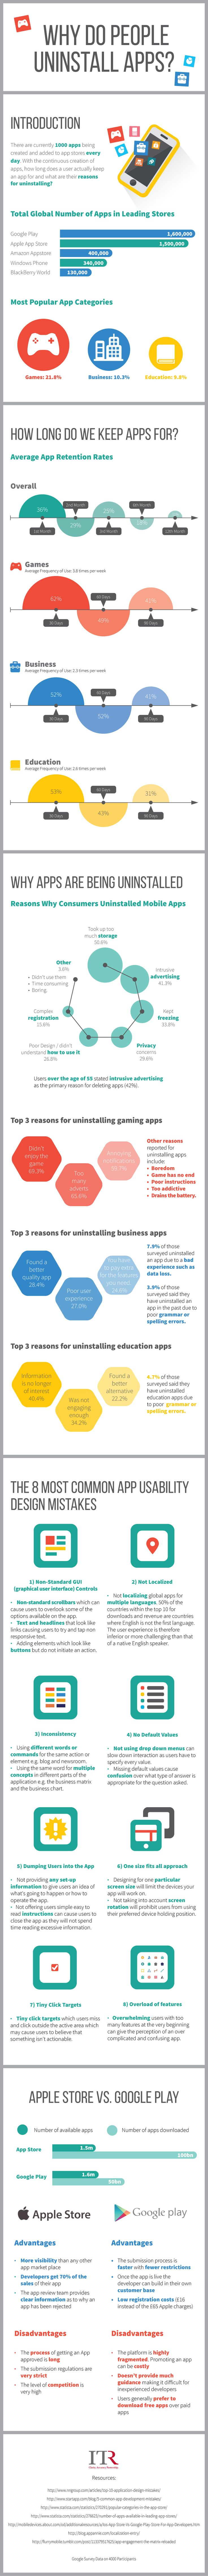 Infographic Of The Day: Why People Uninstall Their Mobile App